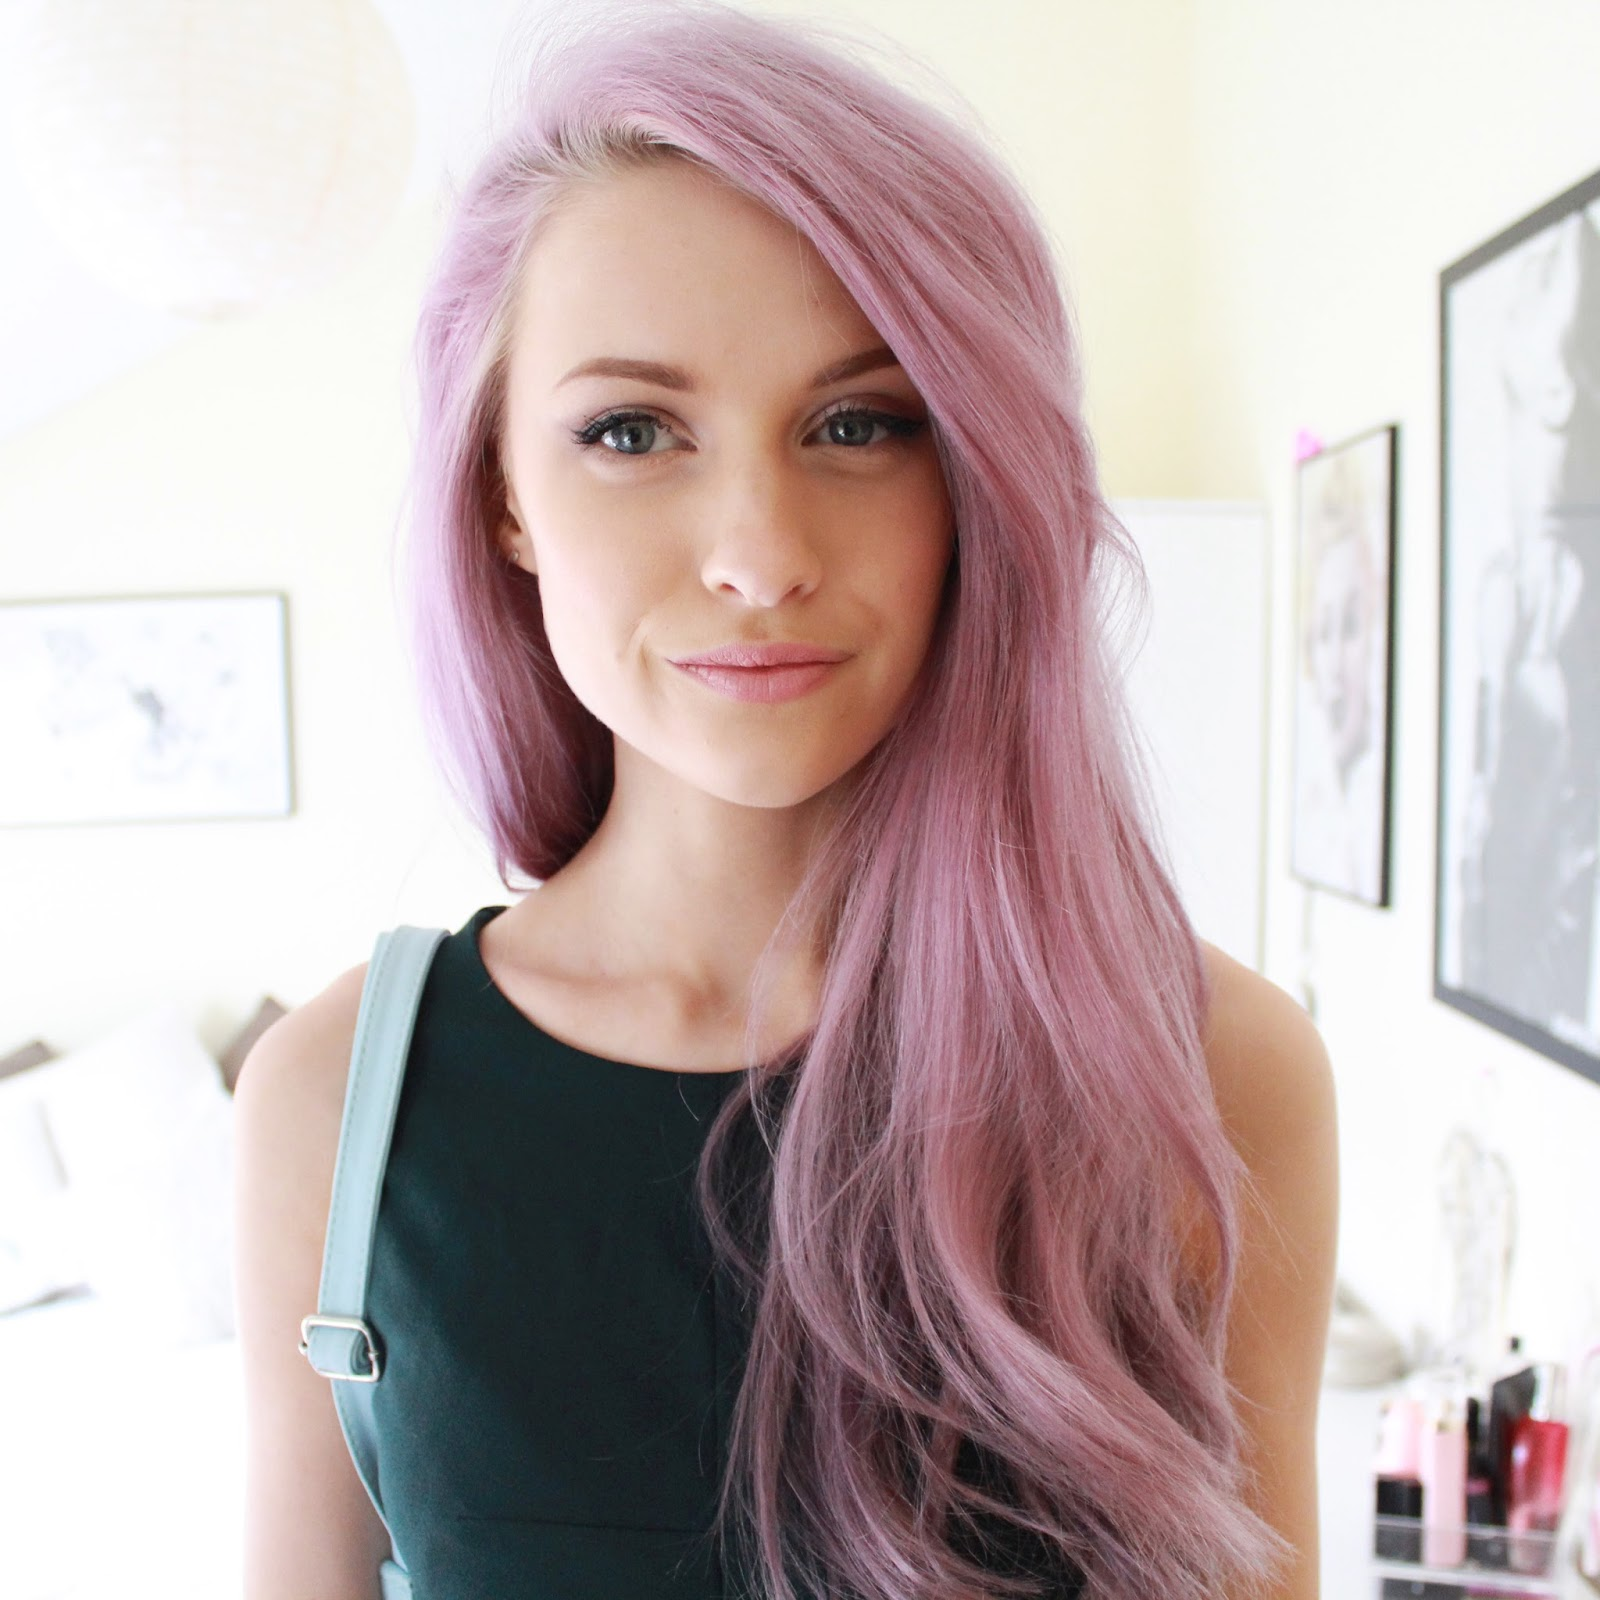 Girls With Light Purple Hair Tumblr Verge Girl Scandal Playsuit